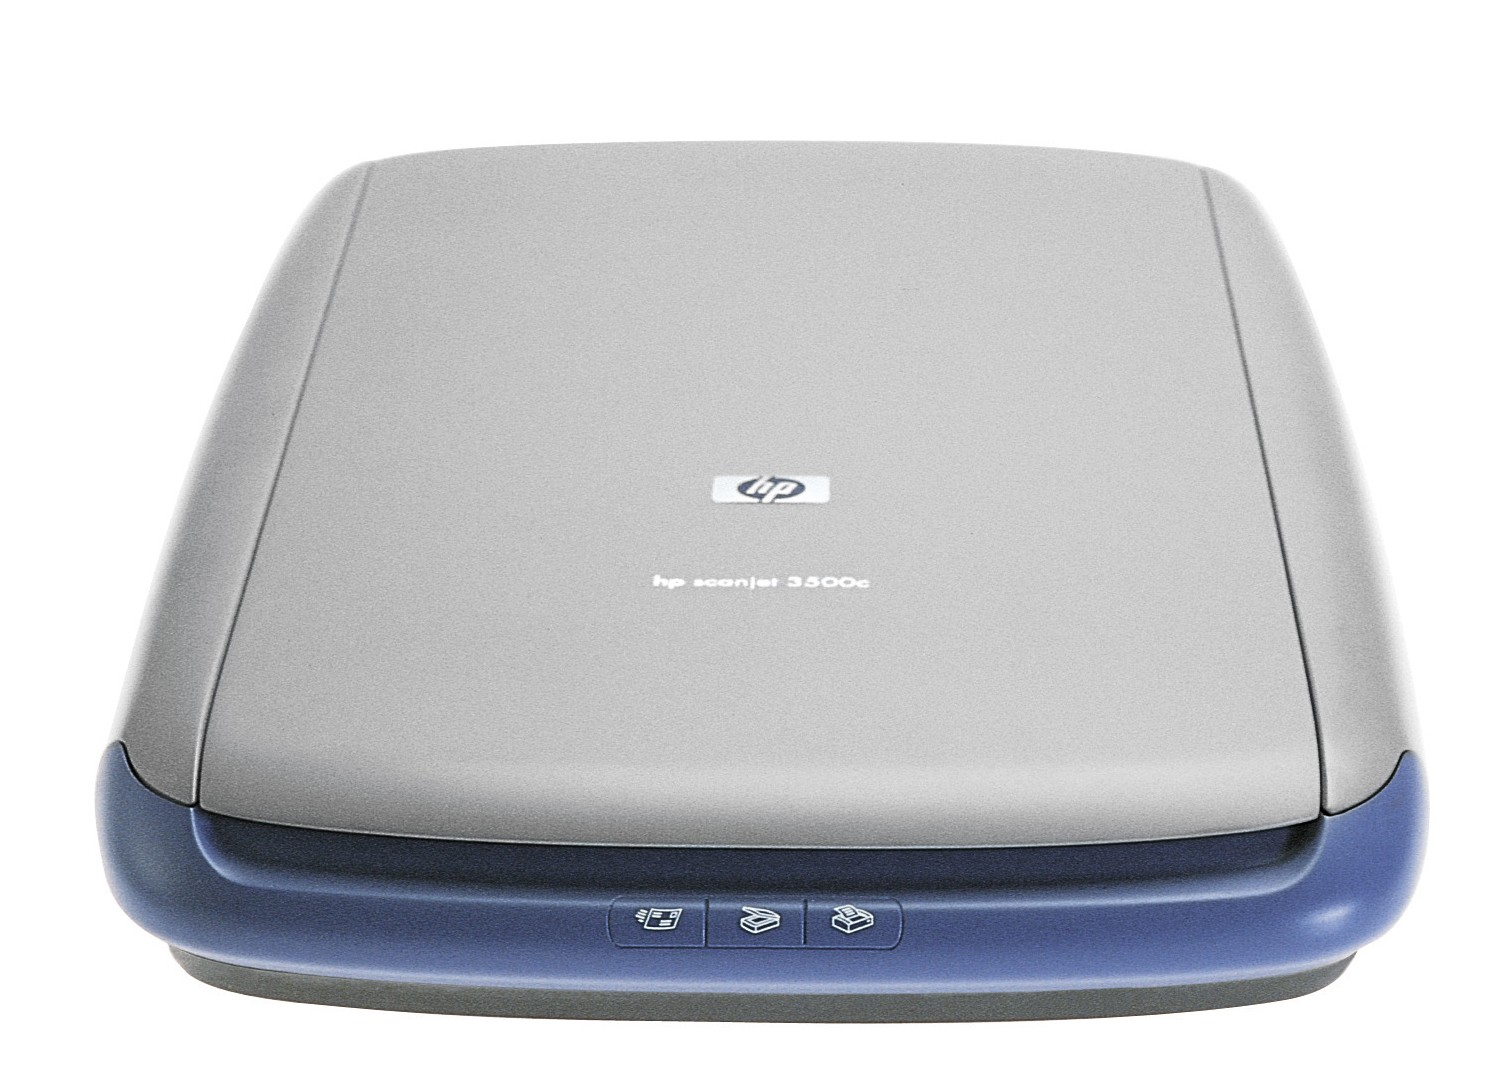 Drivers for HP Scanjet G4000 Photo series - Sciologness Hp scanjet g4000 photo series driver